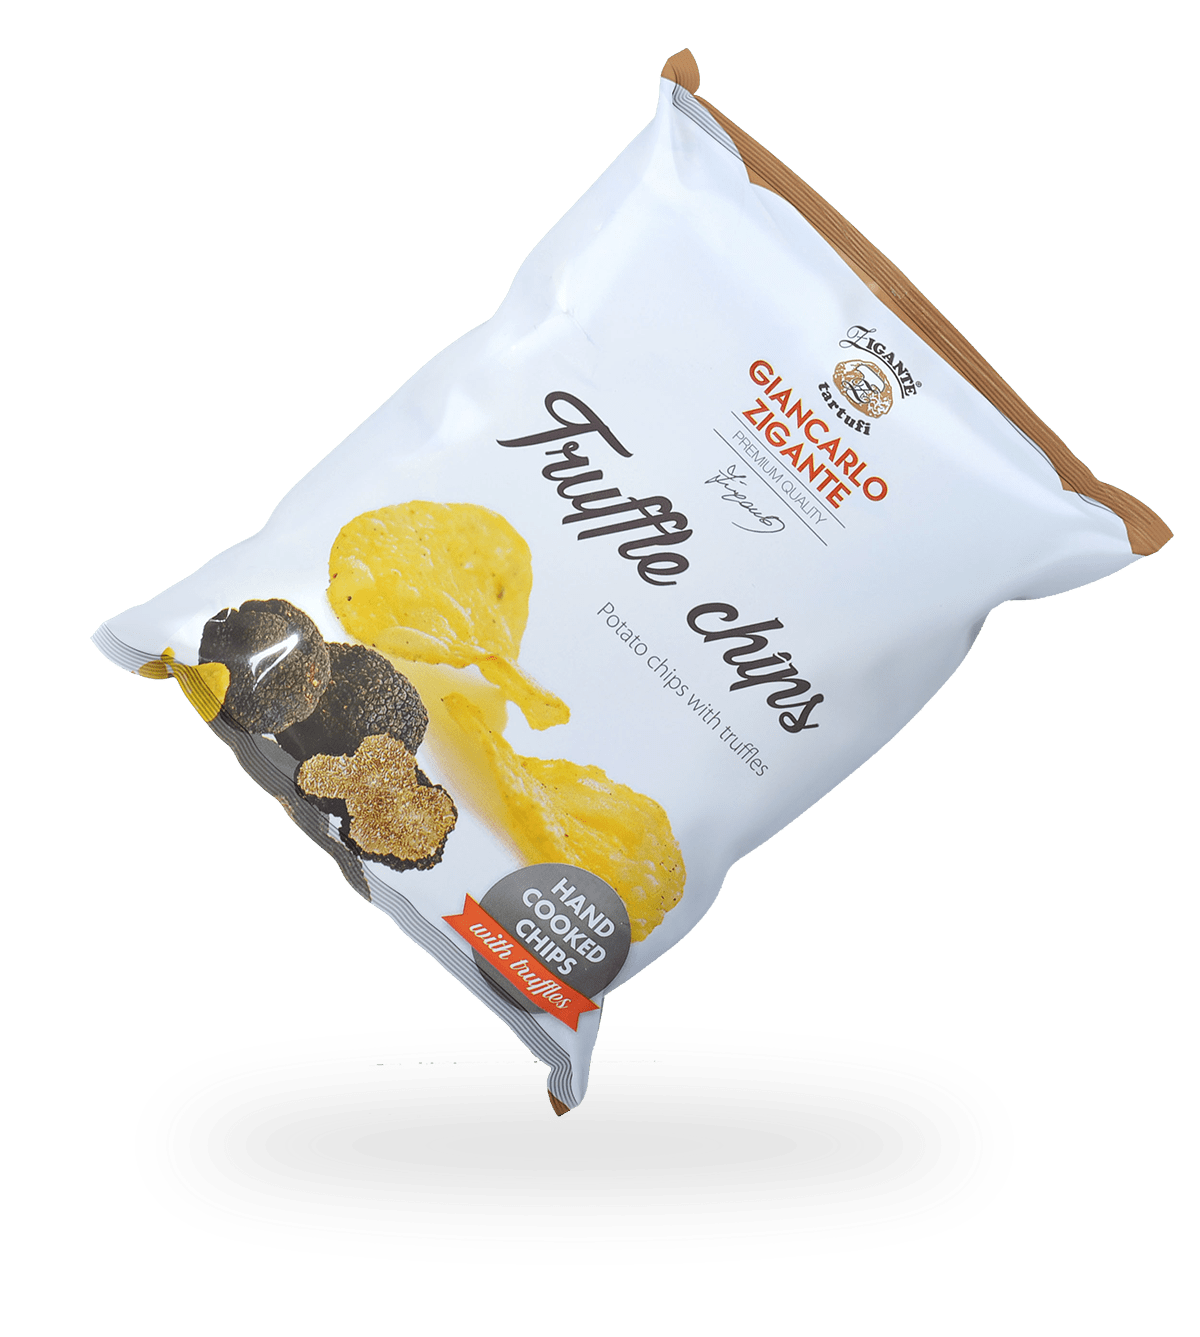 Chips with truffles Zigante